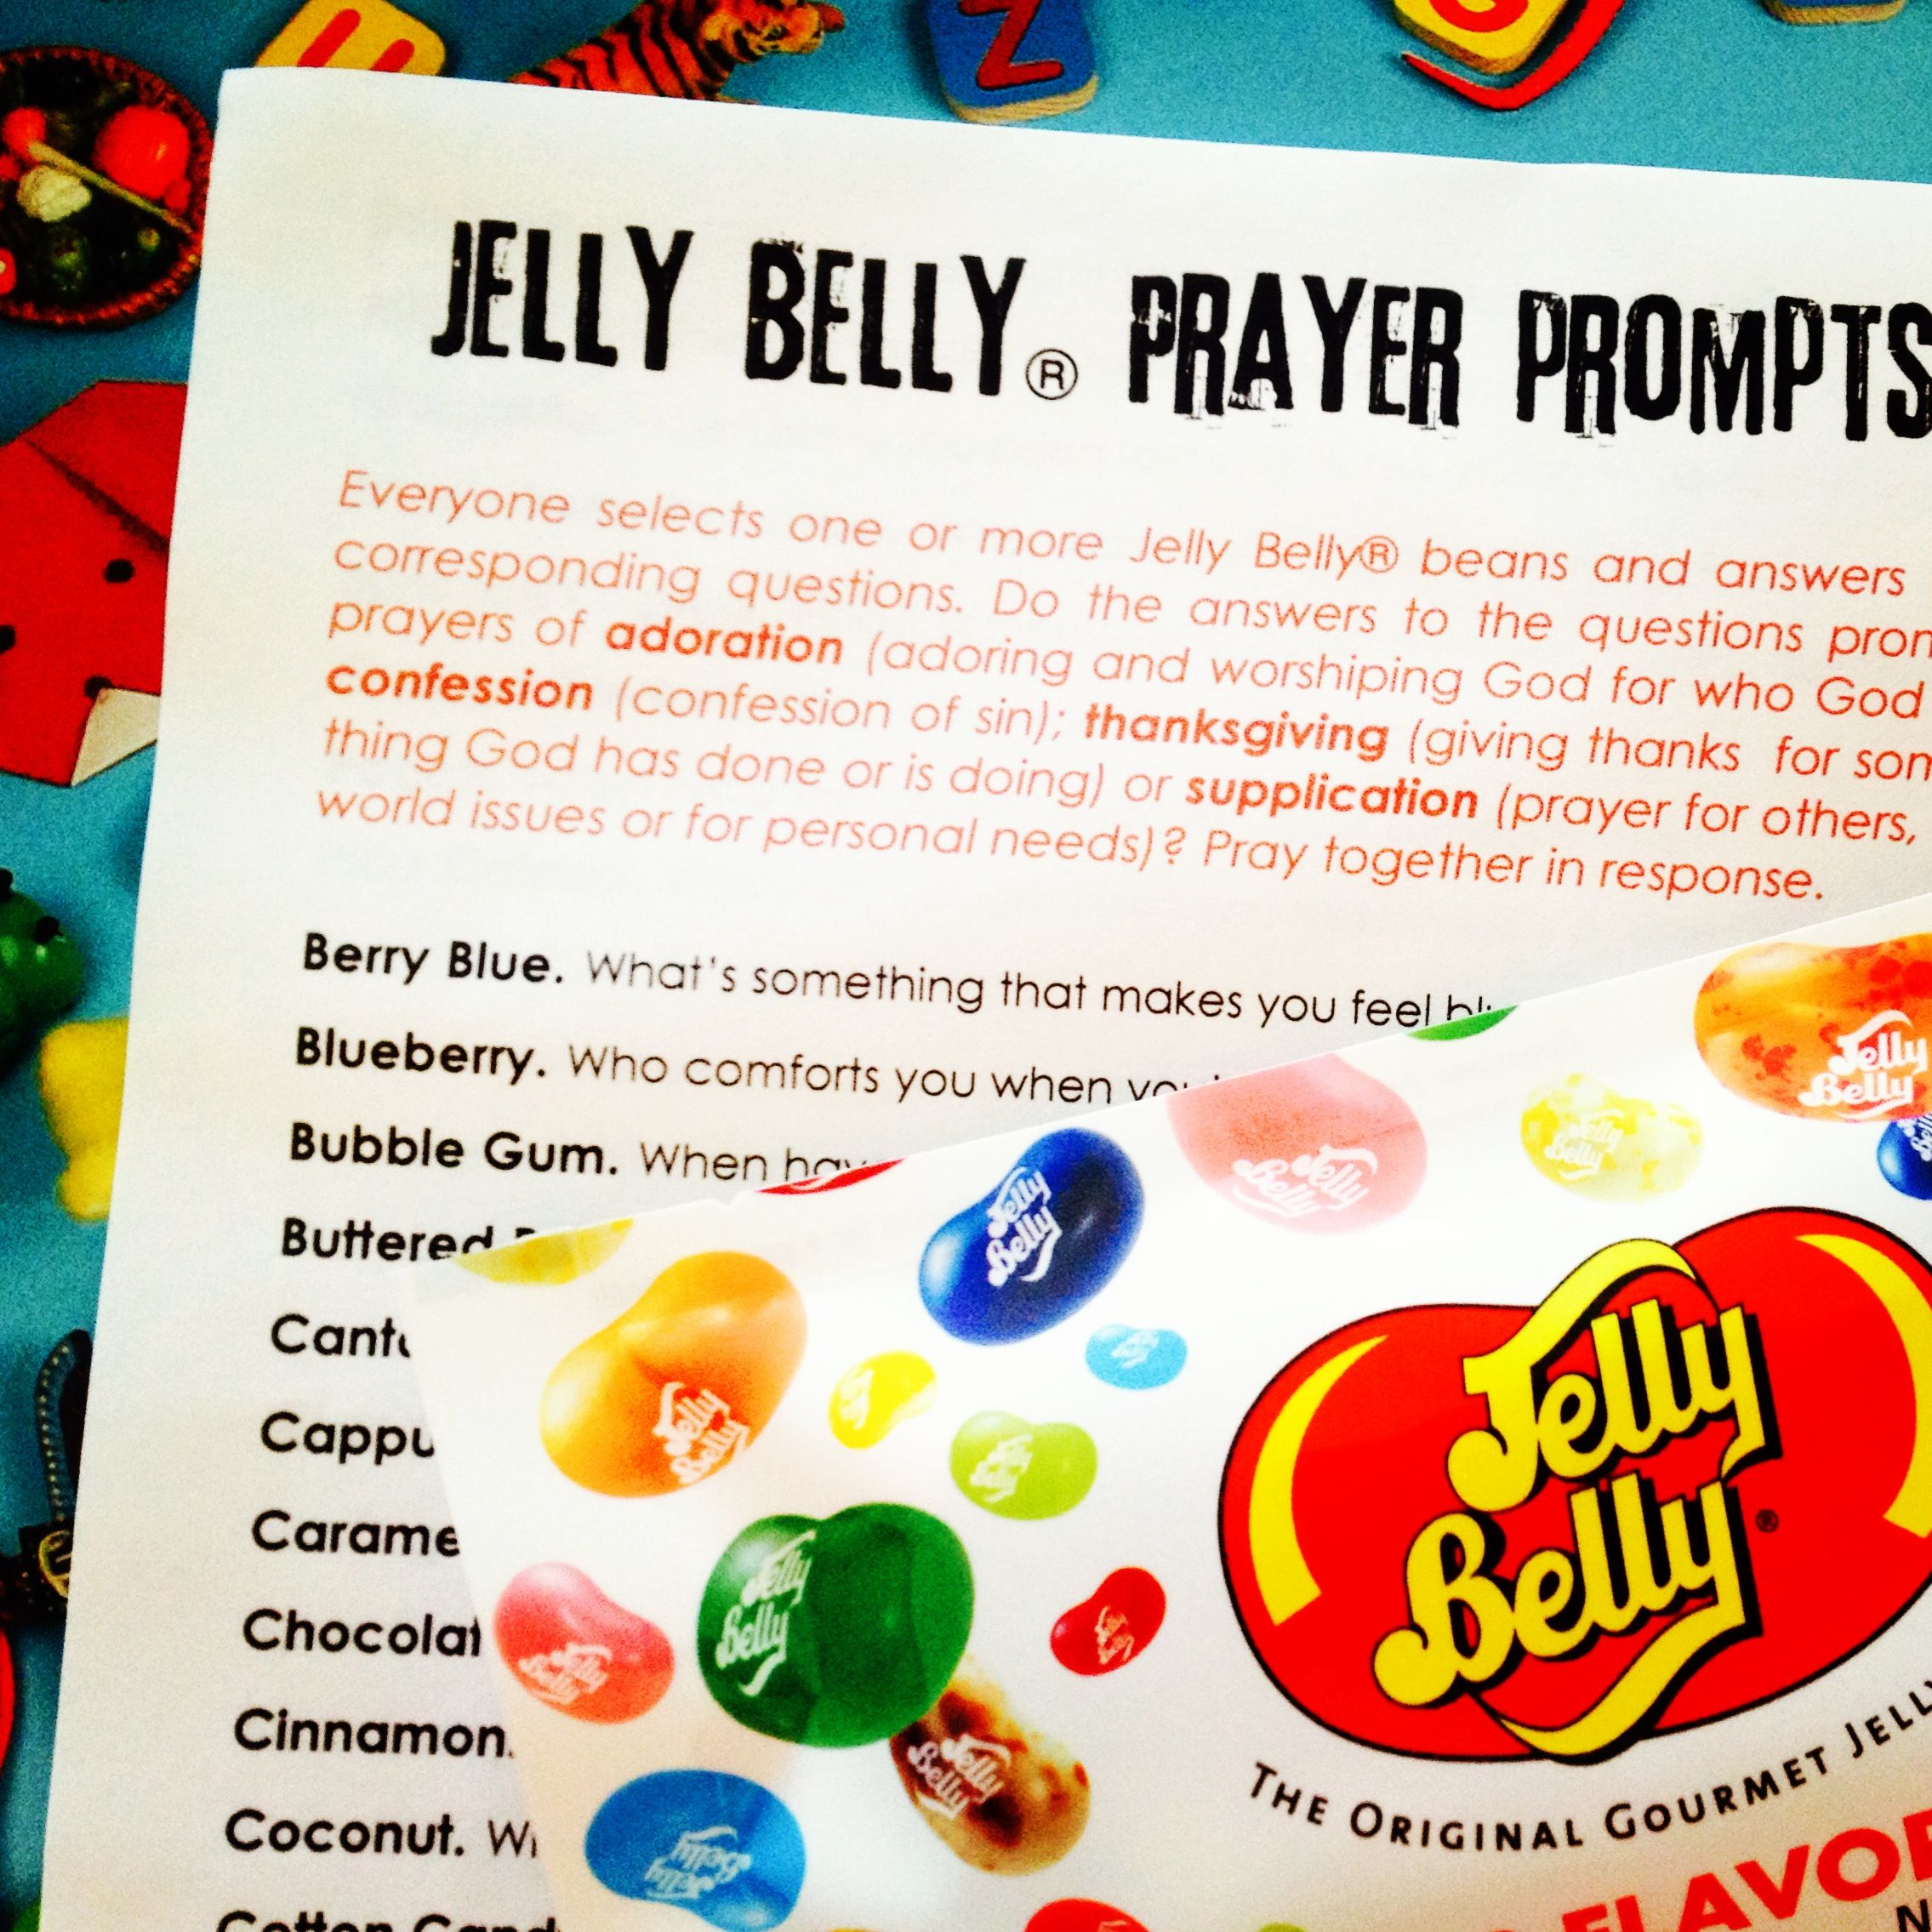 50 Days Of Easter 50 Jelly Belly Prayer Prompts Great